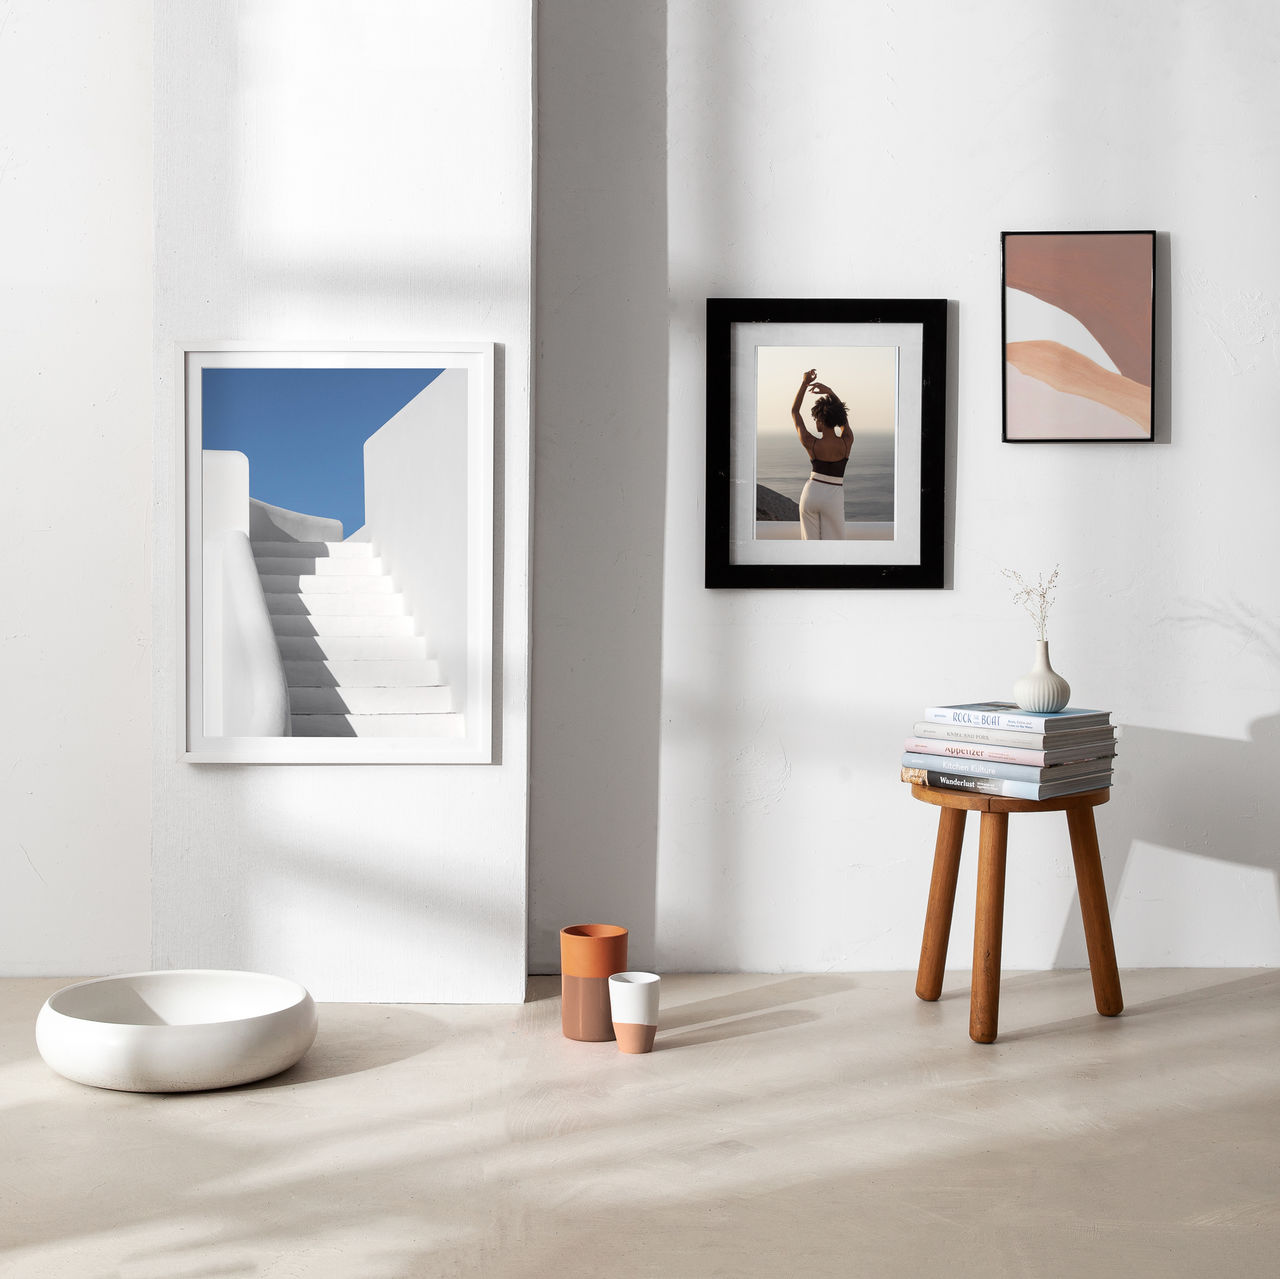 indoors, table, frame, picture frame, no people, home interior, absence, art and craft, wall - building feature, lighting equipment, seat, paintings, furniture, day, representation, paint, domestic room, architecture, photography themes, chair, electric lamp